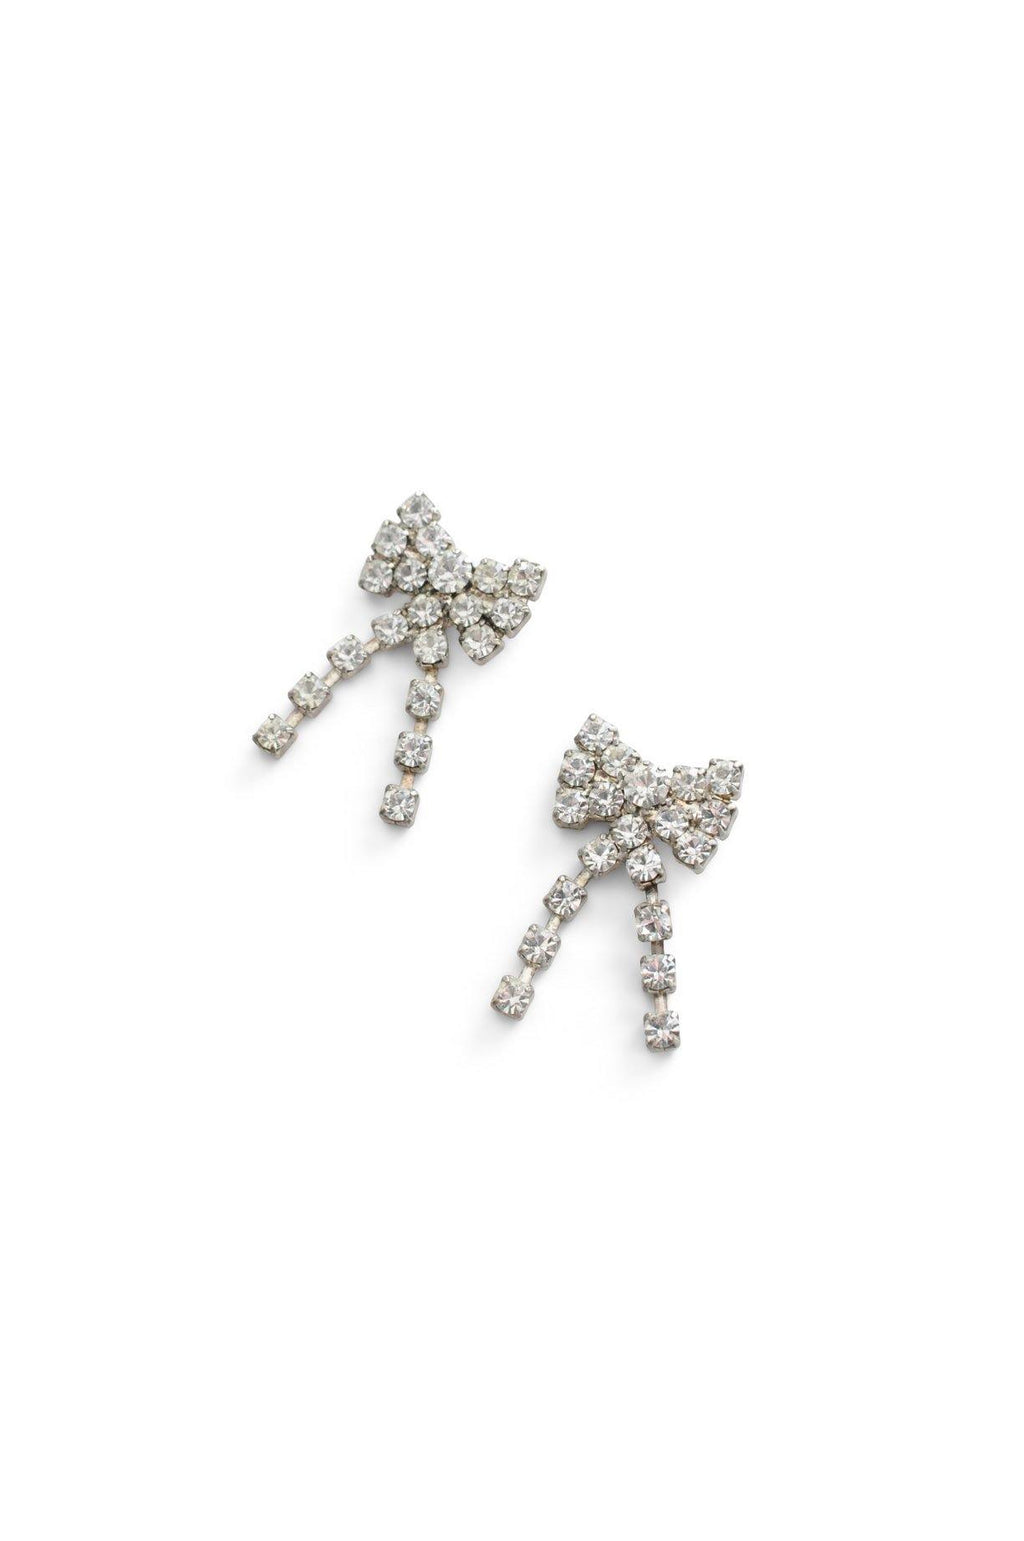 Rhinestone Bow Pierced Earrings